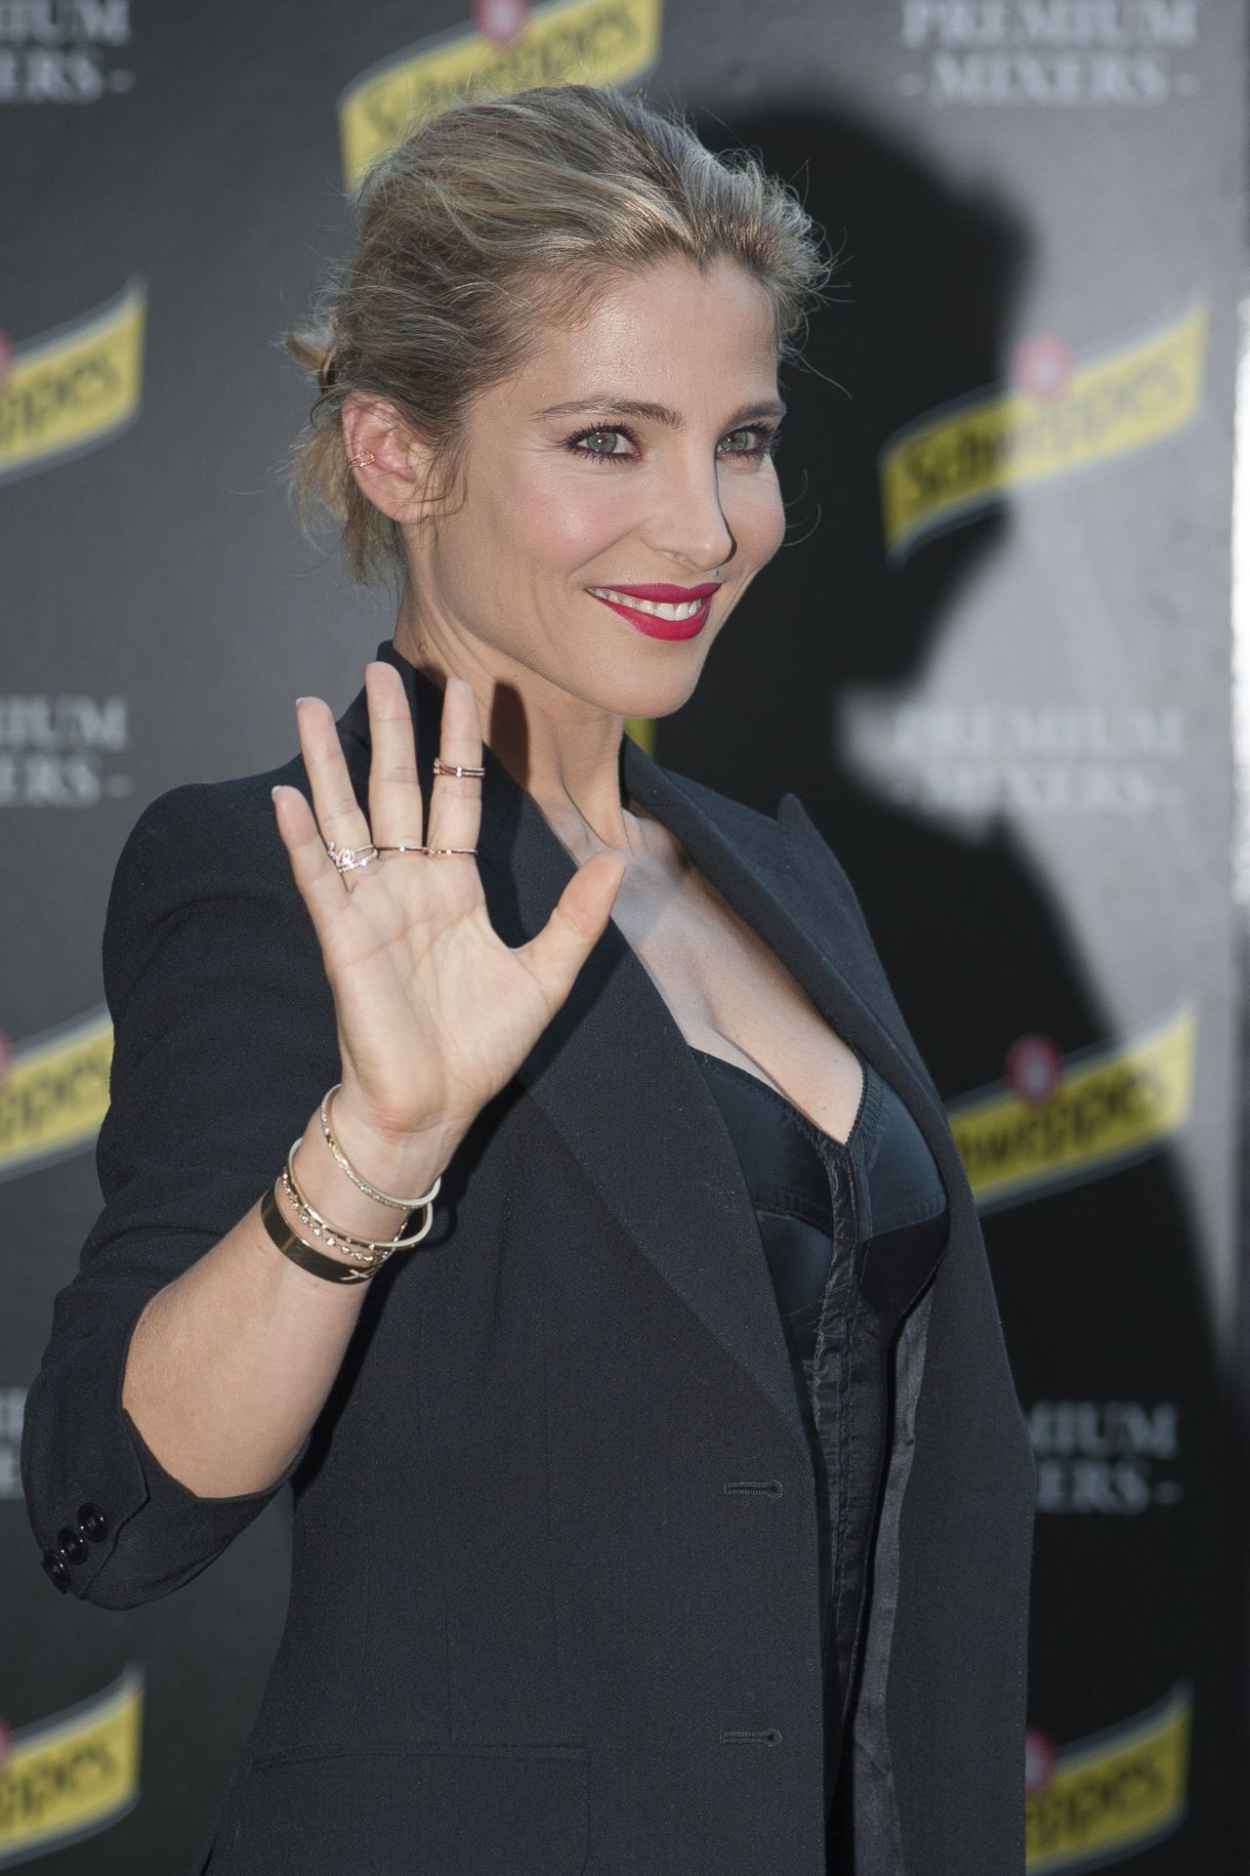 Elsa Pataky - Presentation of the New Convenient Refreshments from Schweppes - June 2015-2